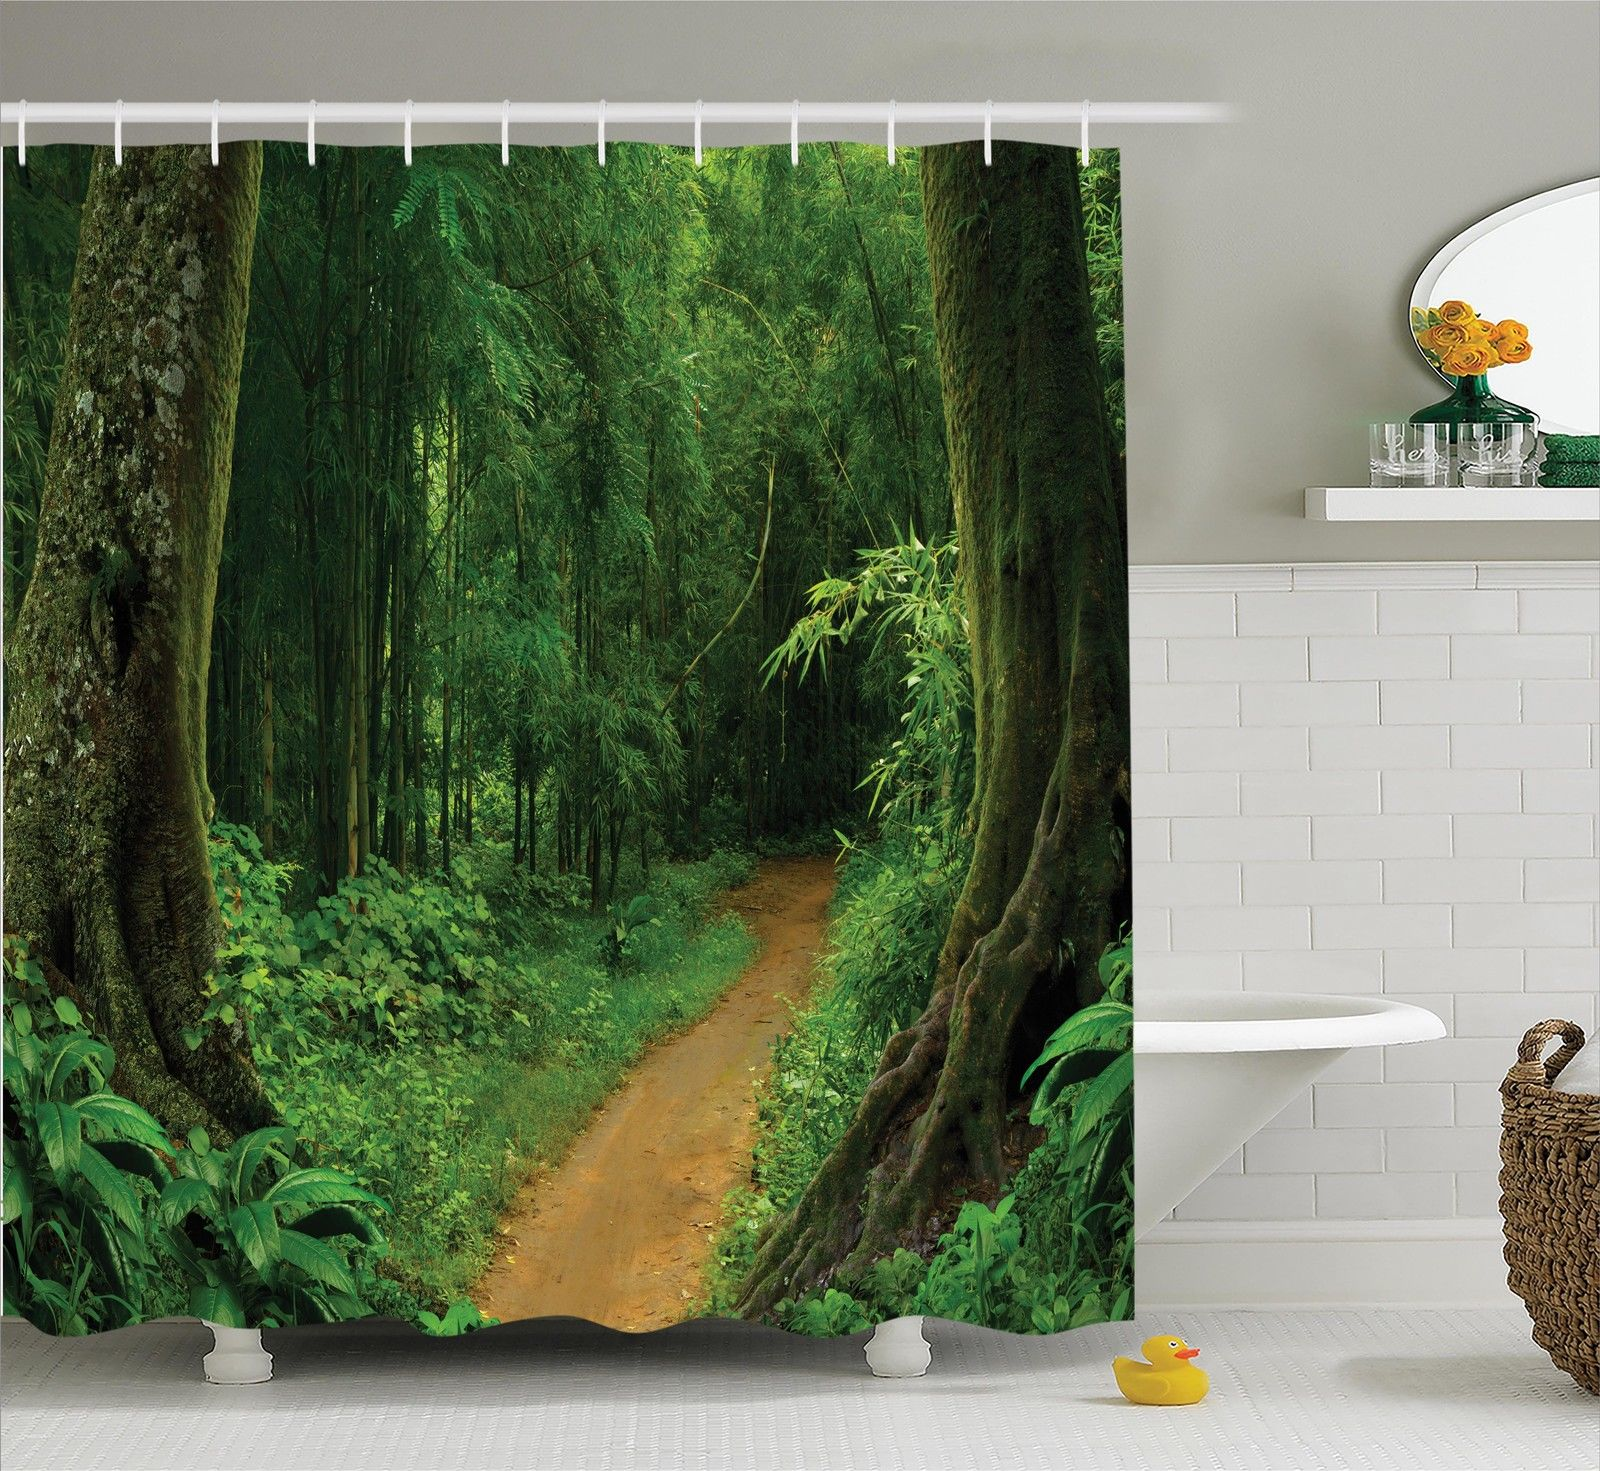 Jungle Shower Curtain Escaped To Nature Themed Path Green